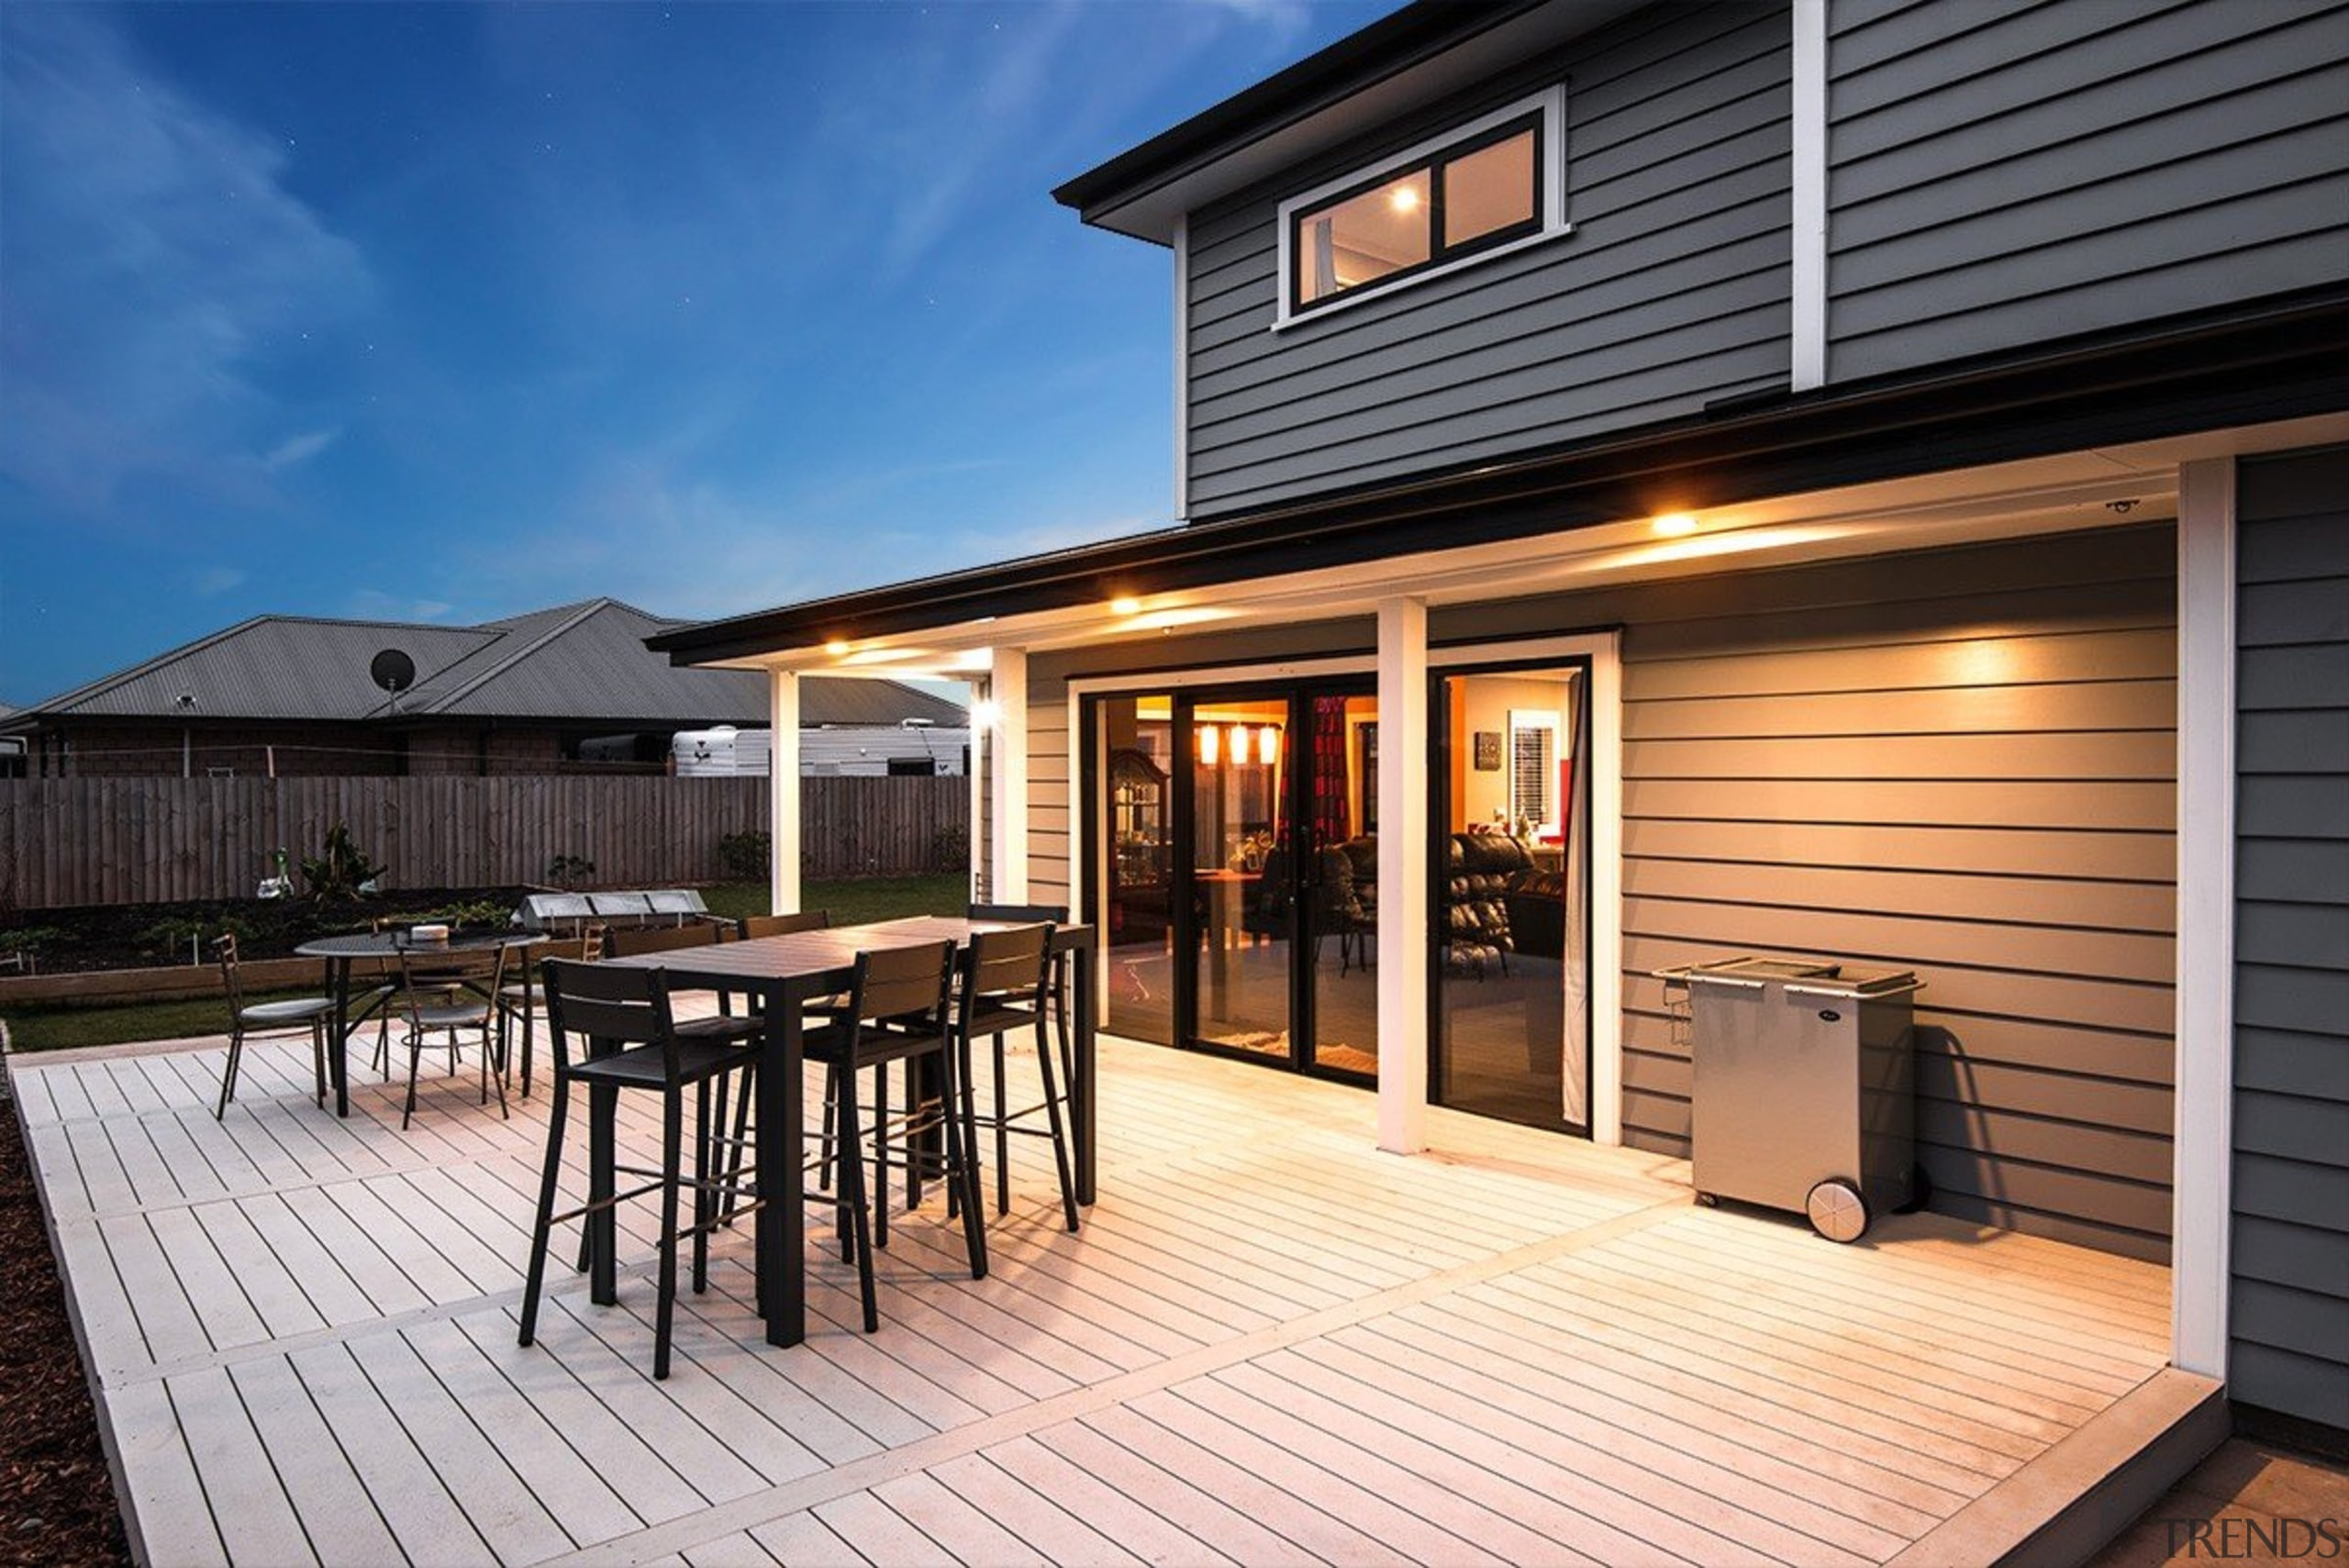 A new home clad with Envira Weatherboard System deck, home, house, outdoor structure, property, real estate, siding, window, black